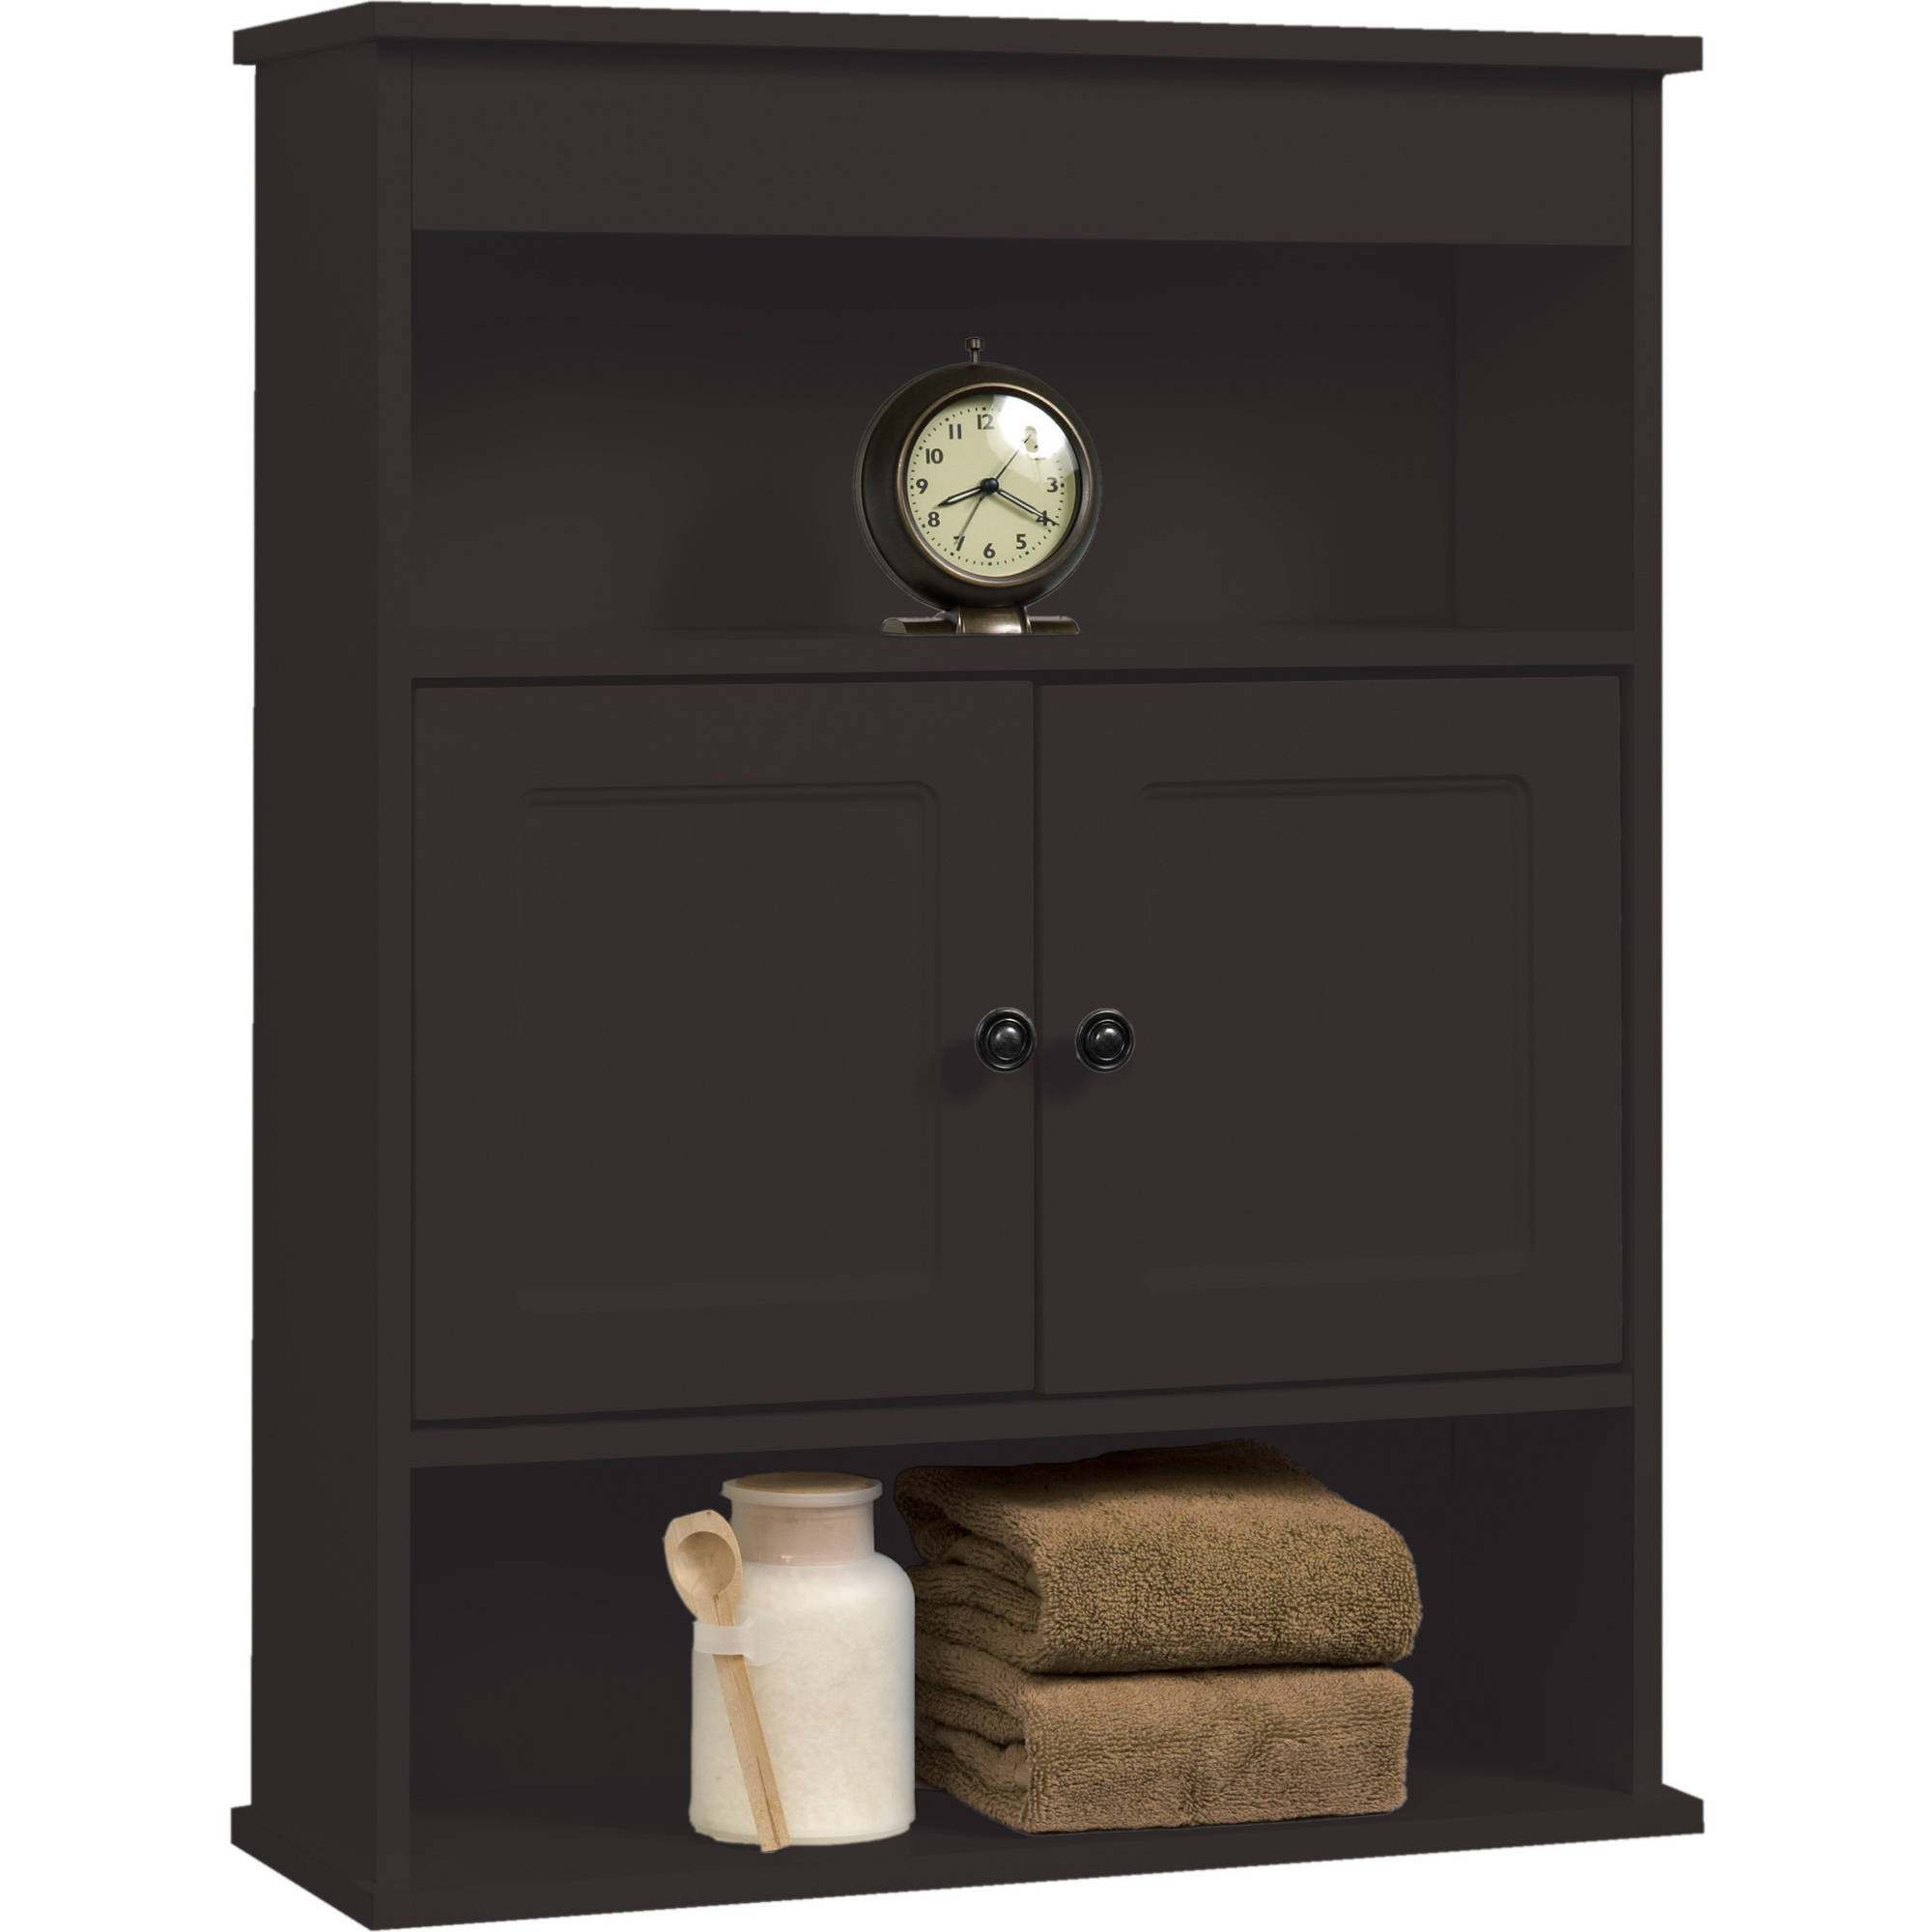 luxury design best inch wall bathroom cabinet cabinets vanity of mount ikea beautiful ideas remarkable remodel idea